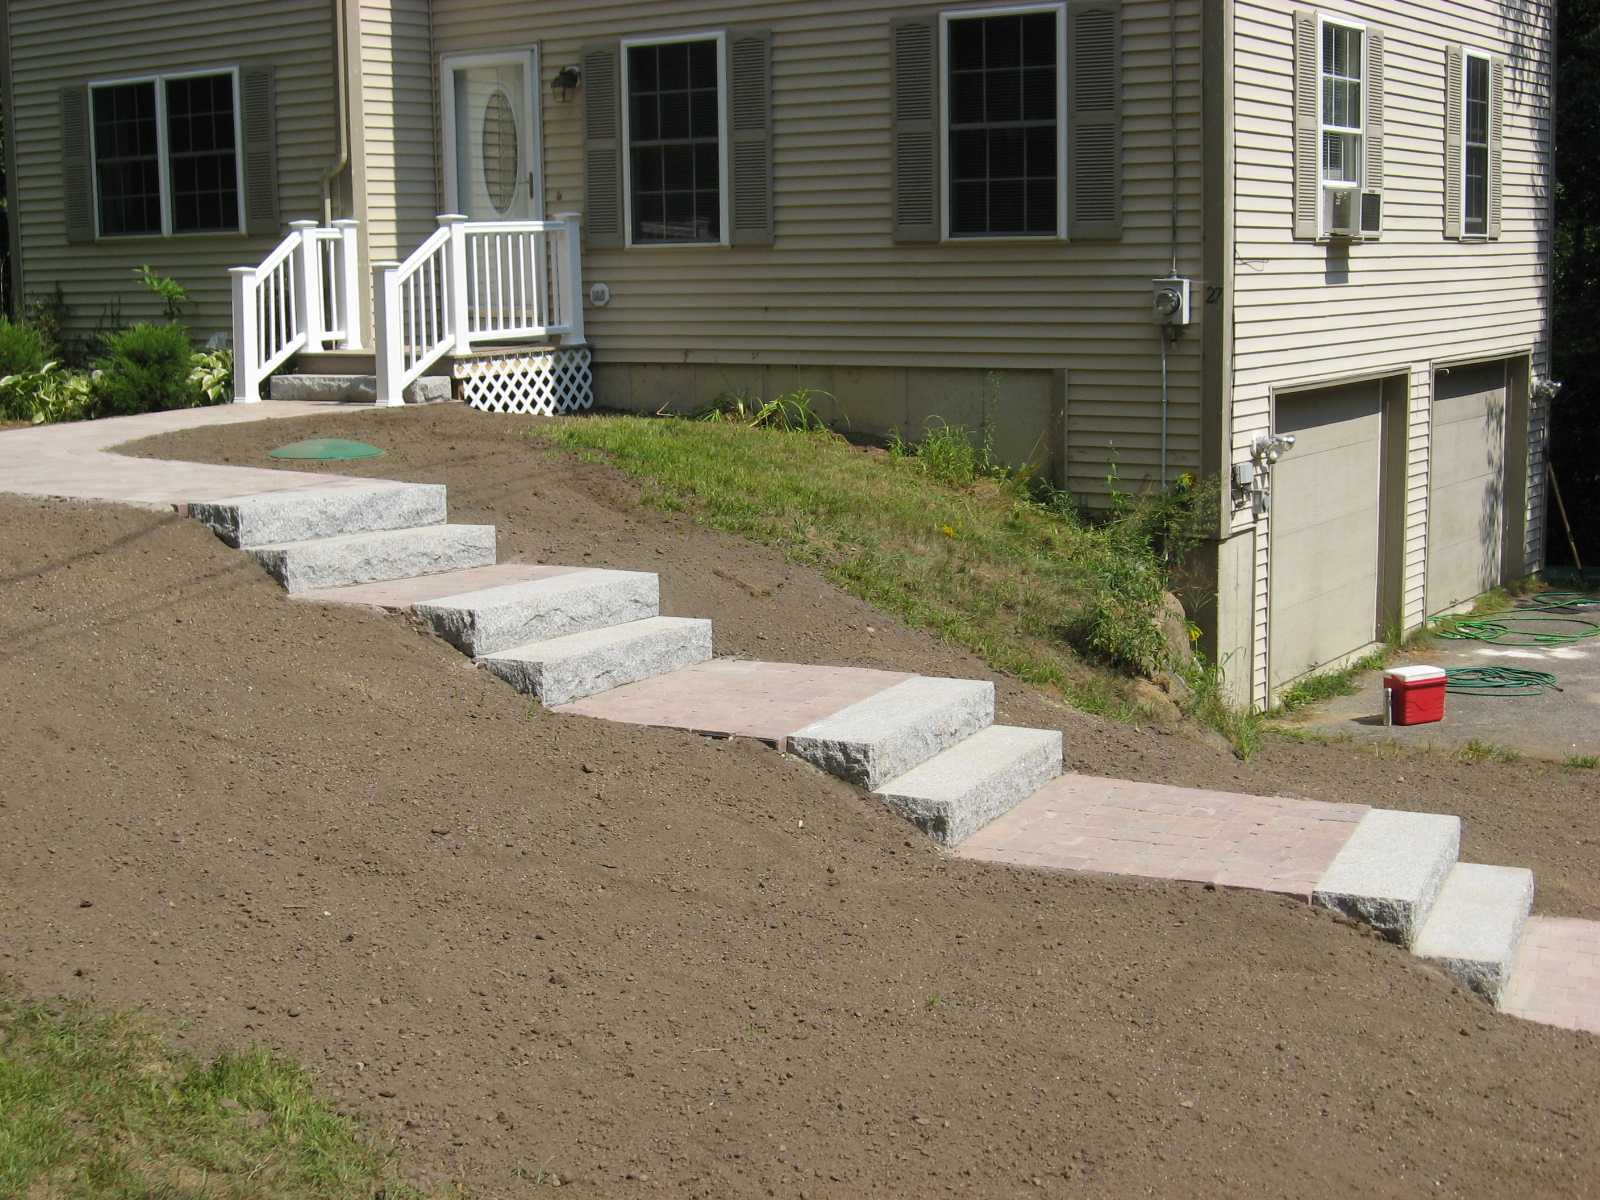 1000 Images About Walkways On Pinterest Stone Steps